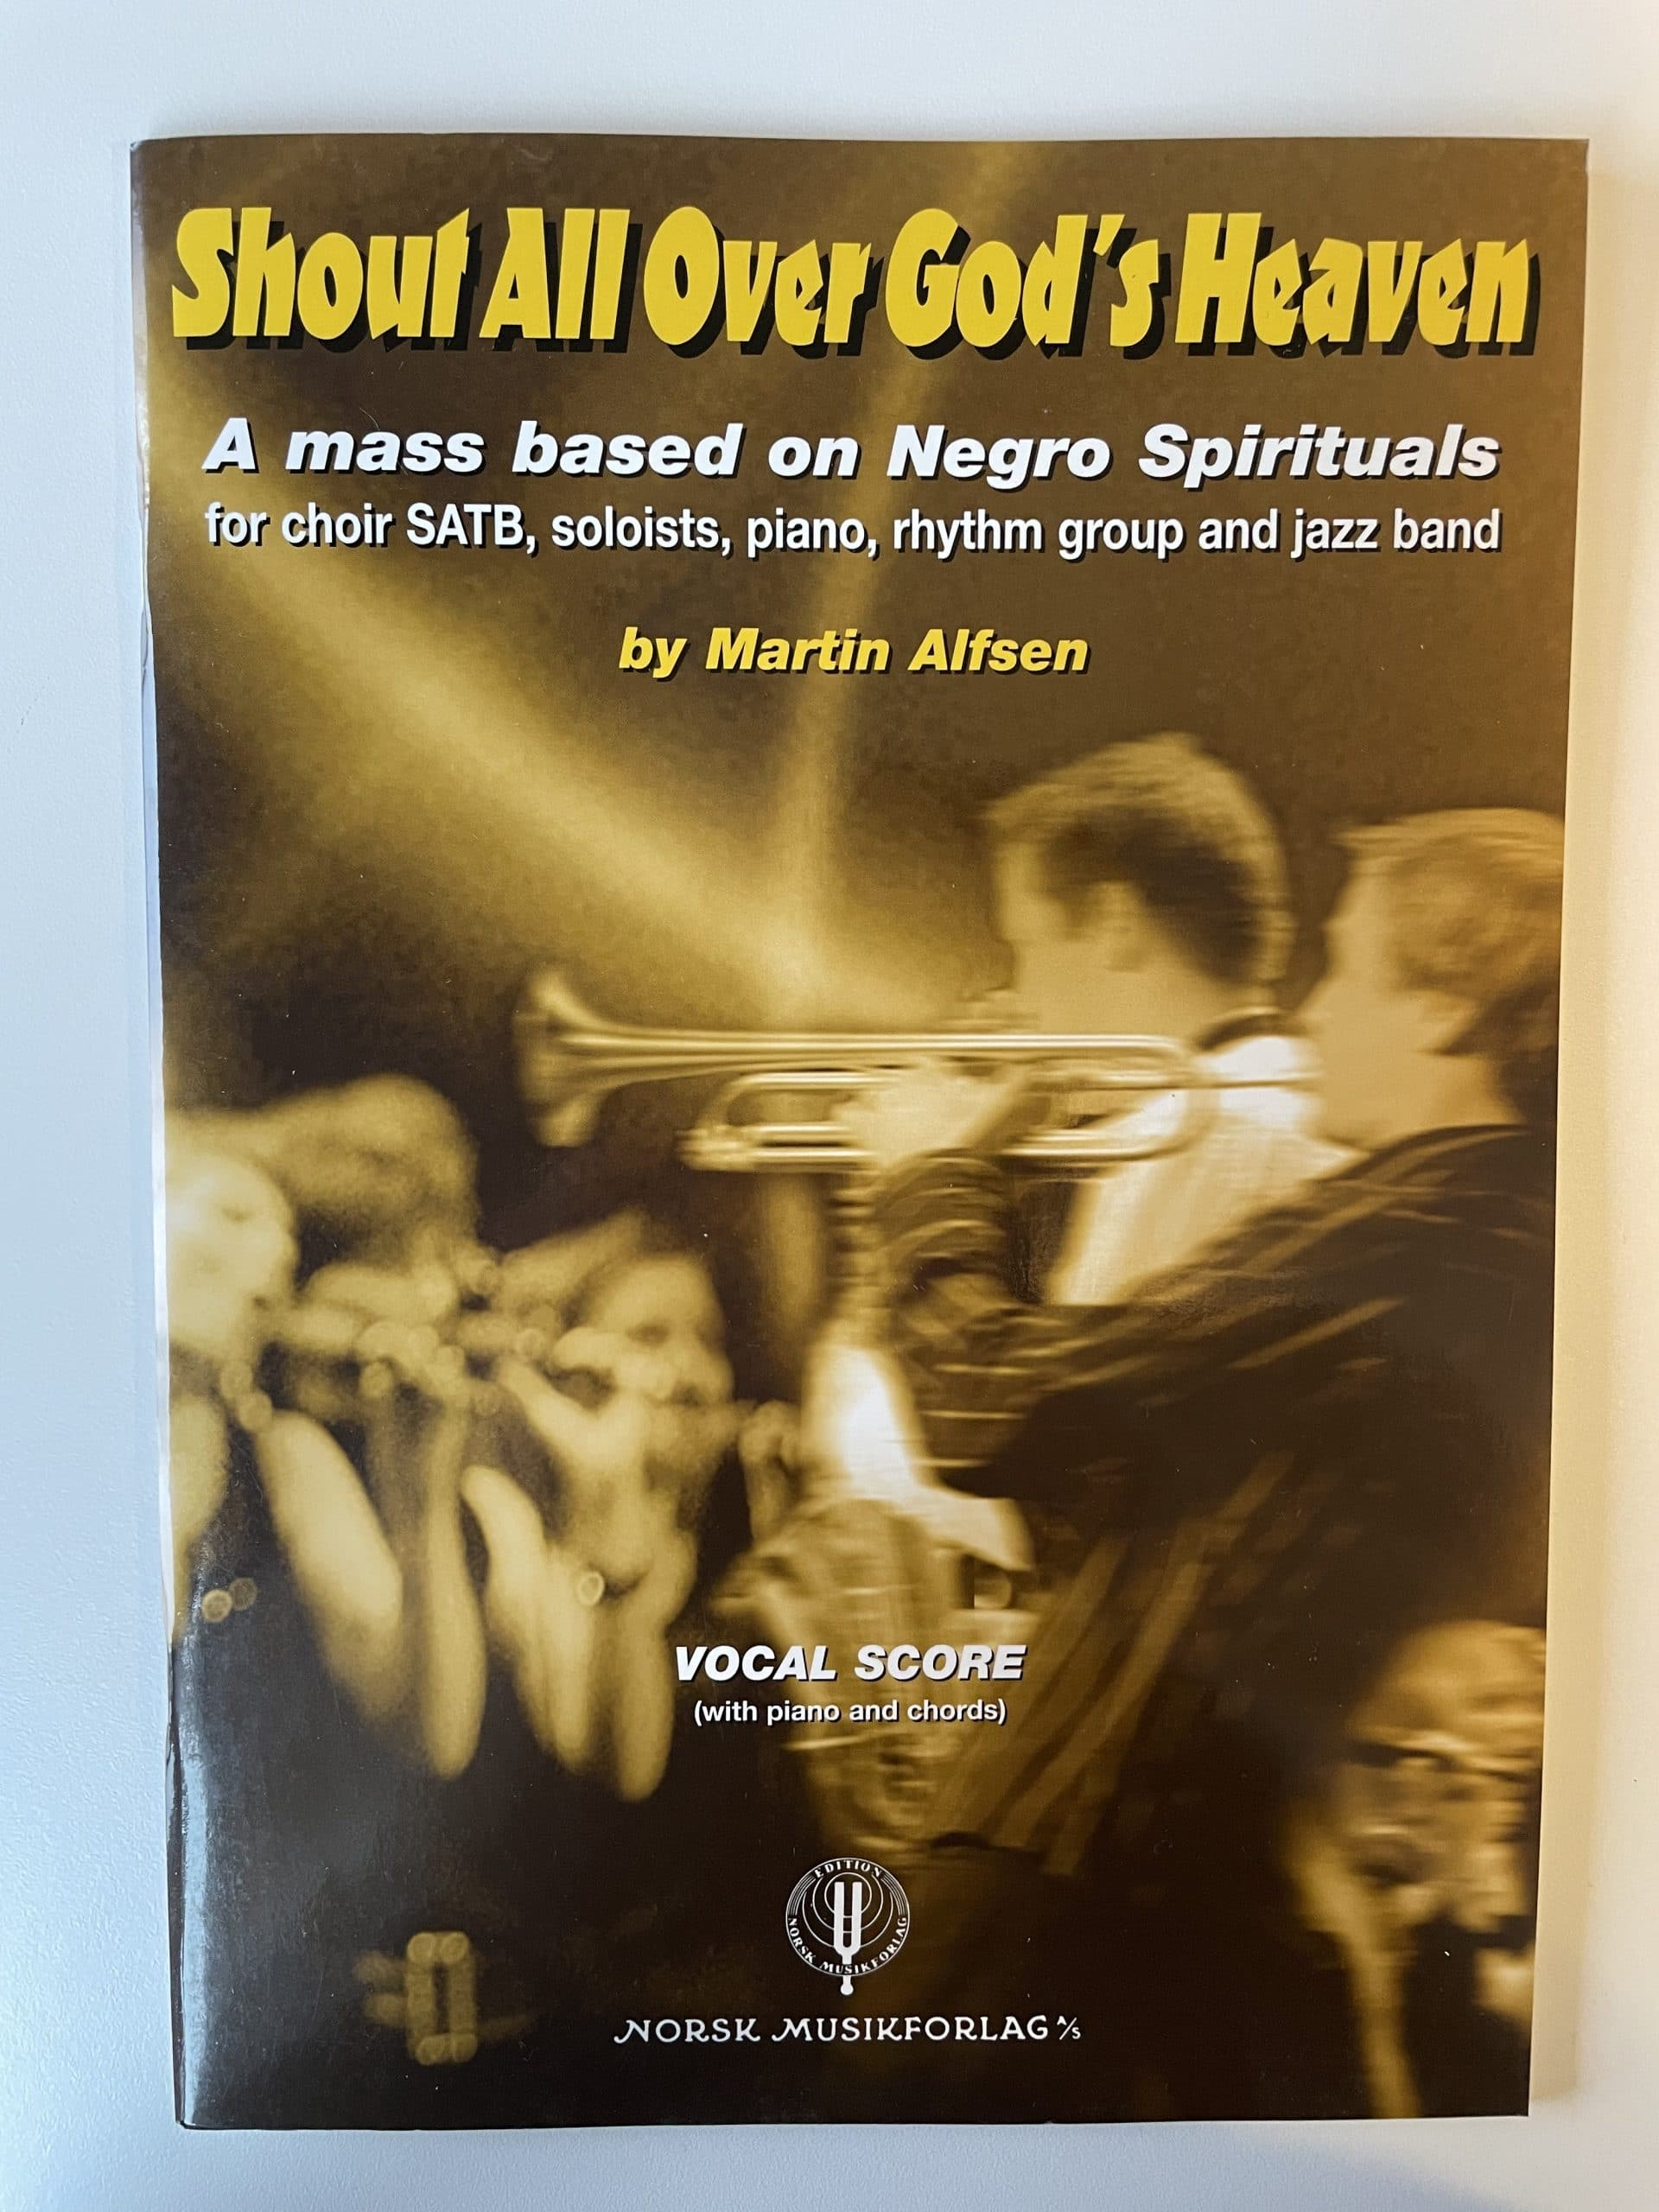 Shout all over God's heaven - Vocal score-27289